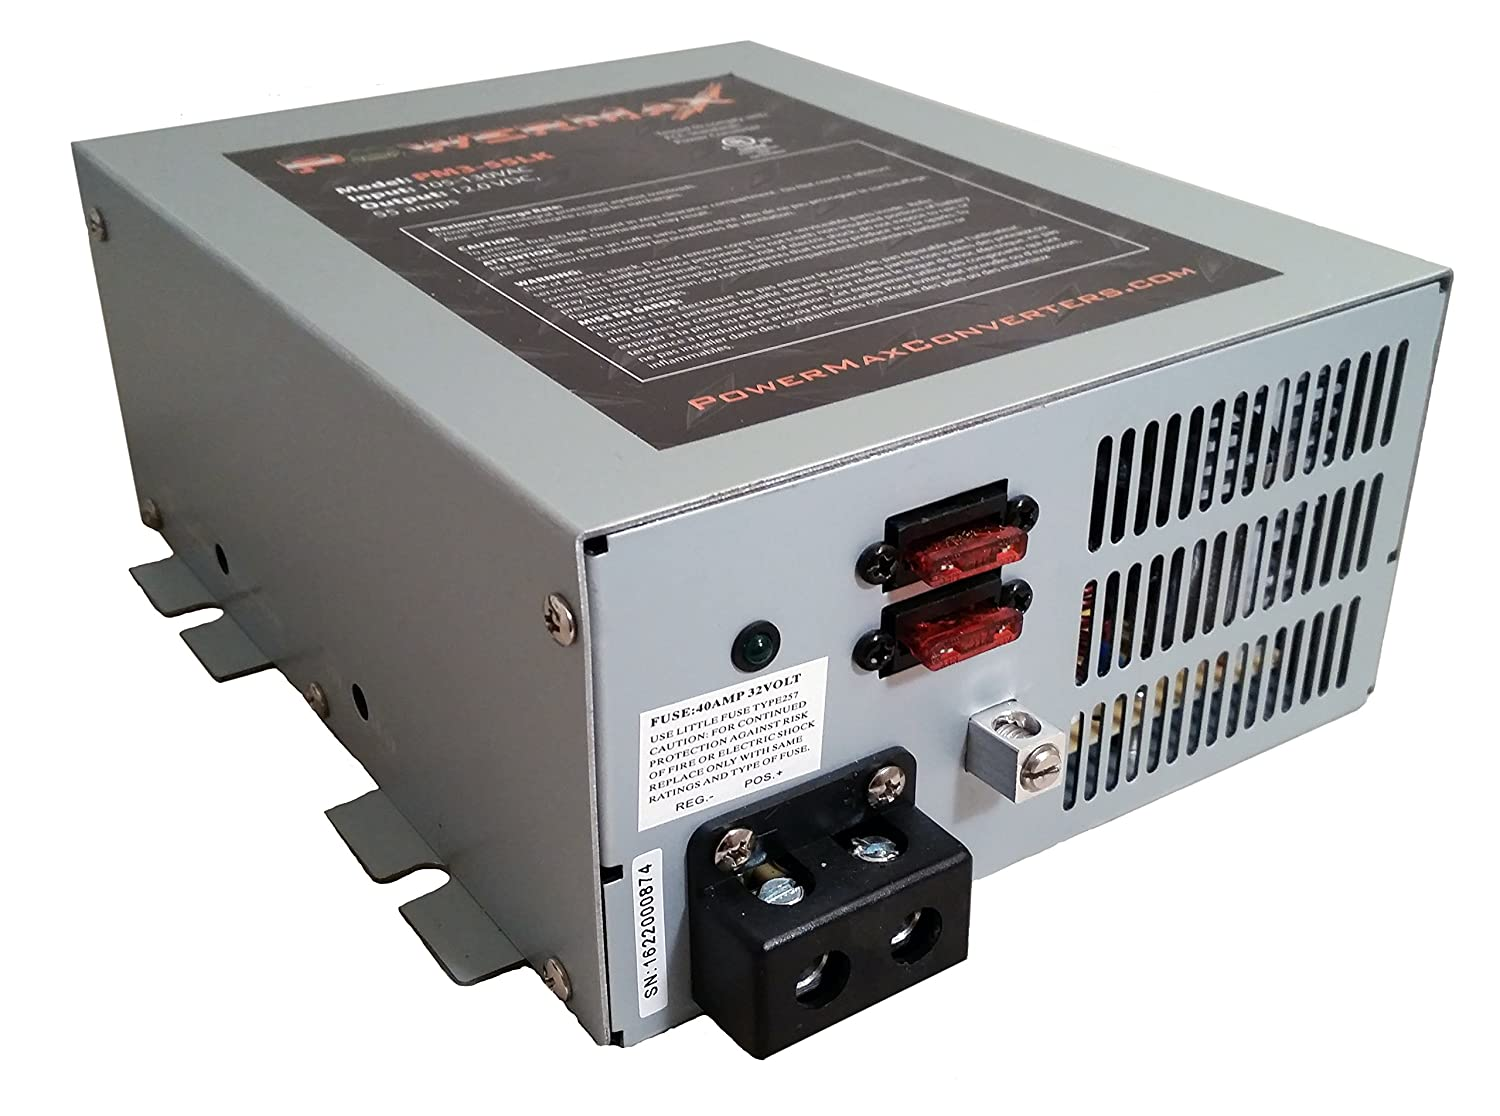 PowerMax PM4 60A 110V AC to 12V DC 60 Amp Power Converter with Built-In 4 Stage Smart Battery Charger